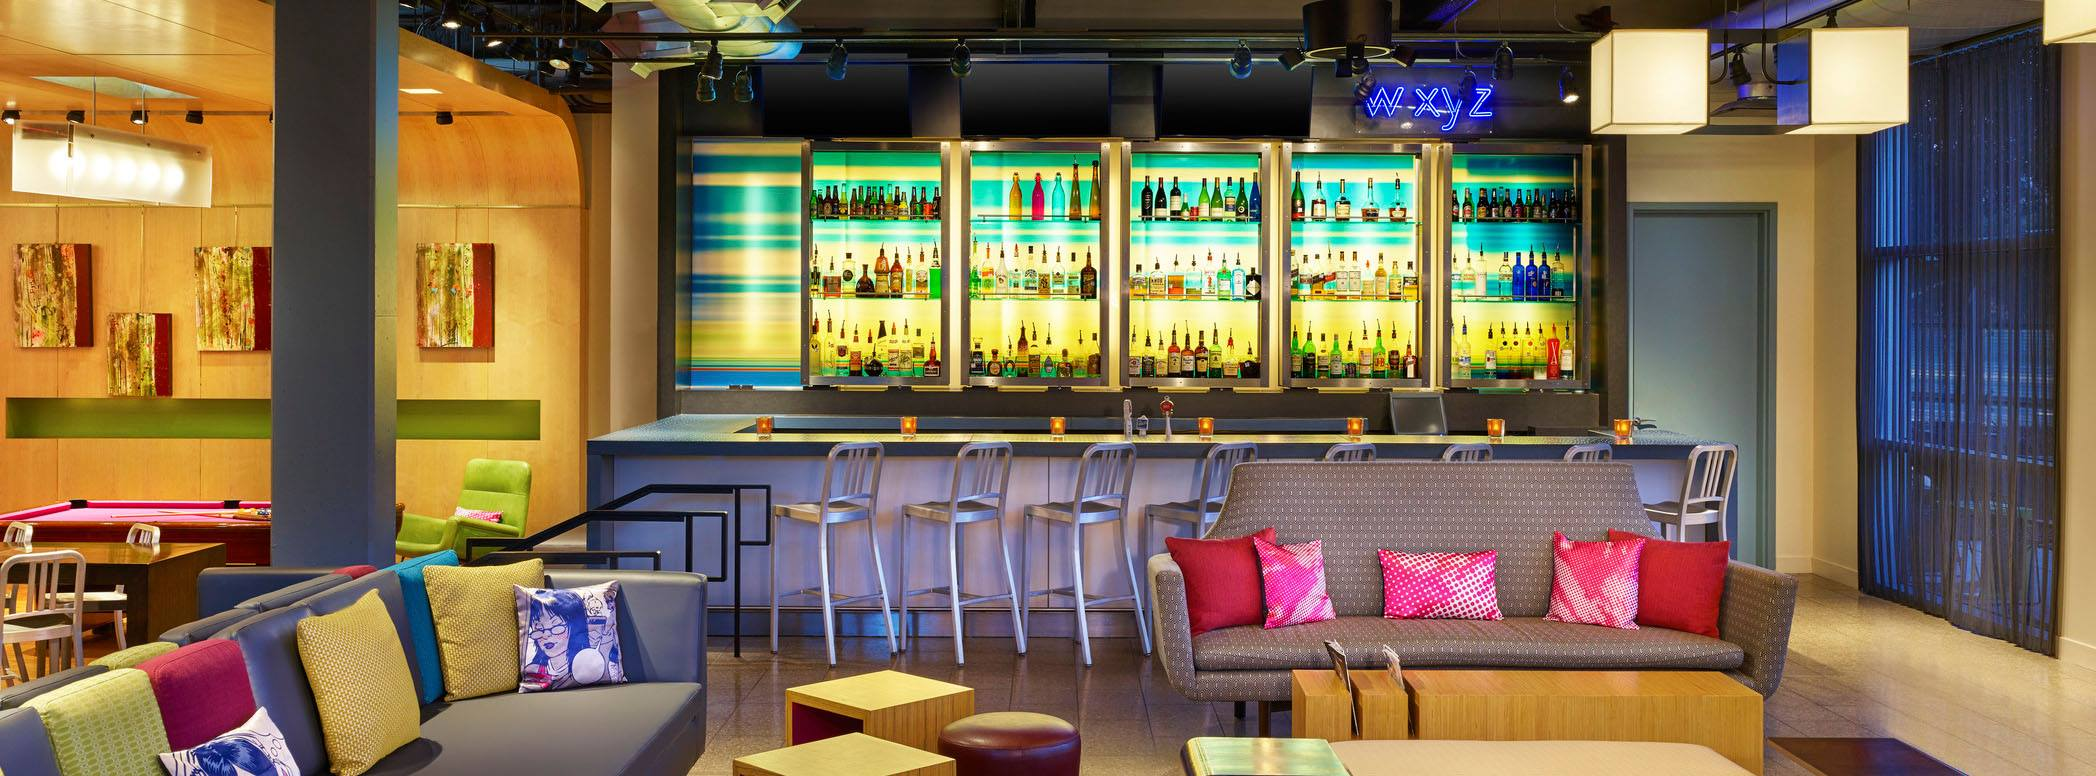 Aloft Reno Interior